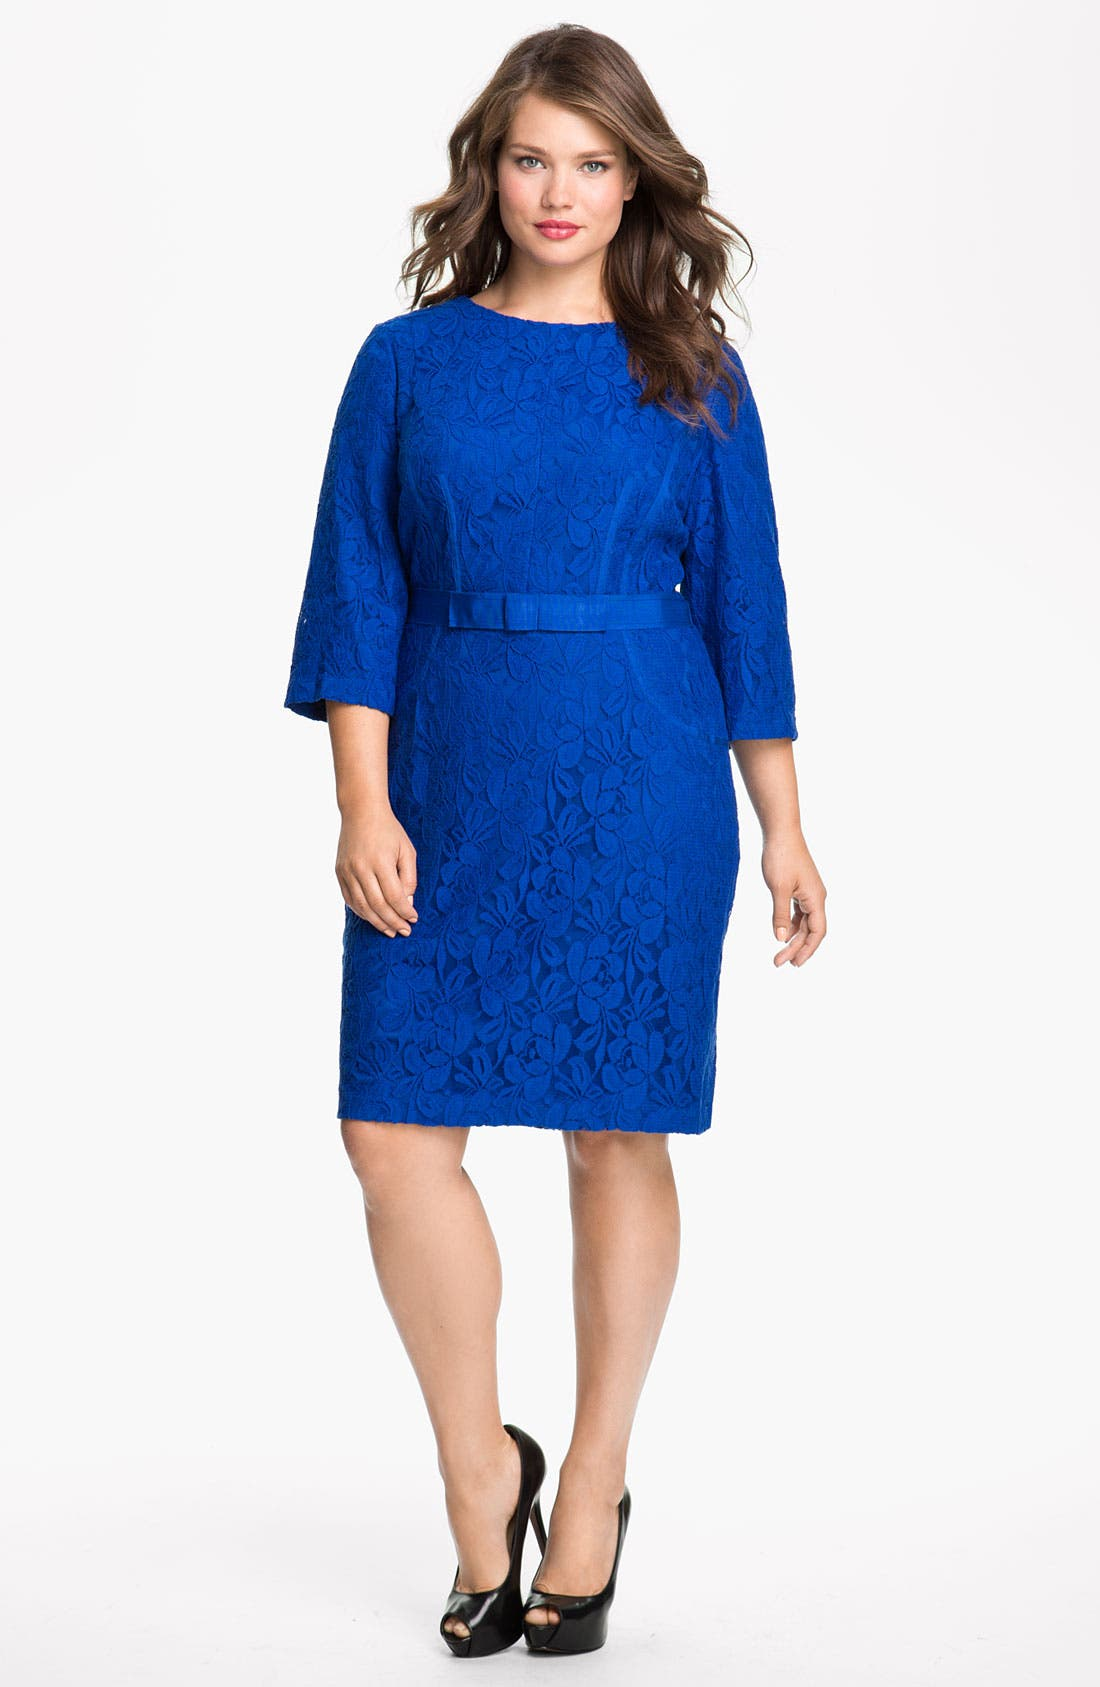 Alternate Image 1 Selected - Taylor Dresses Long Sleeve Lace Dress (Plus)